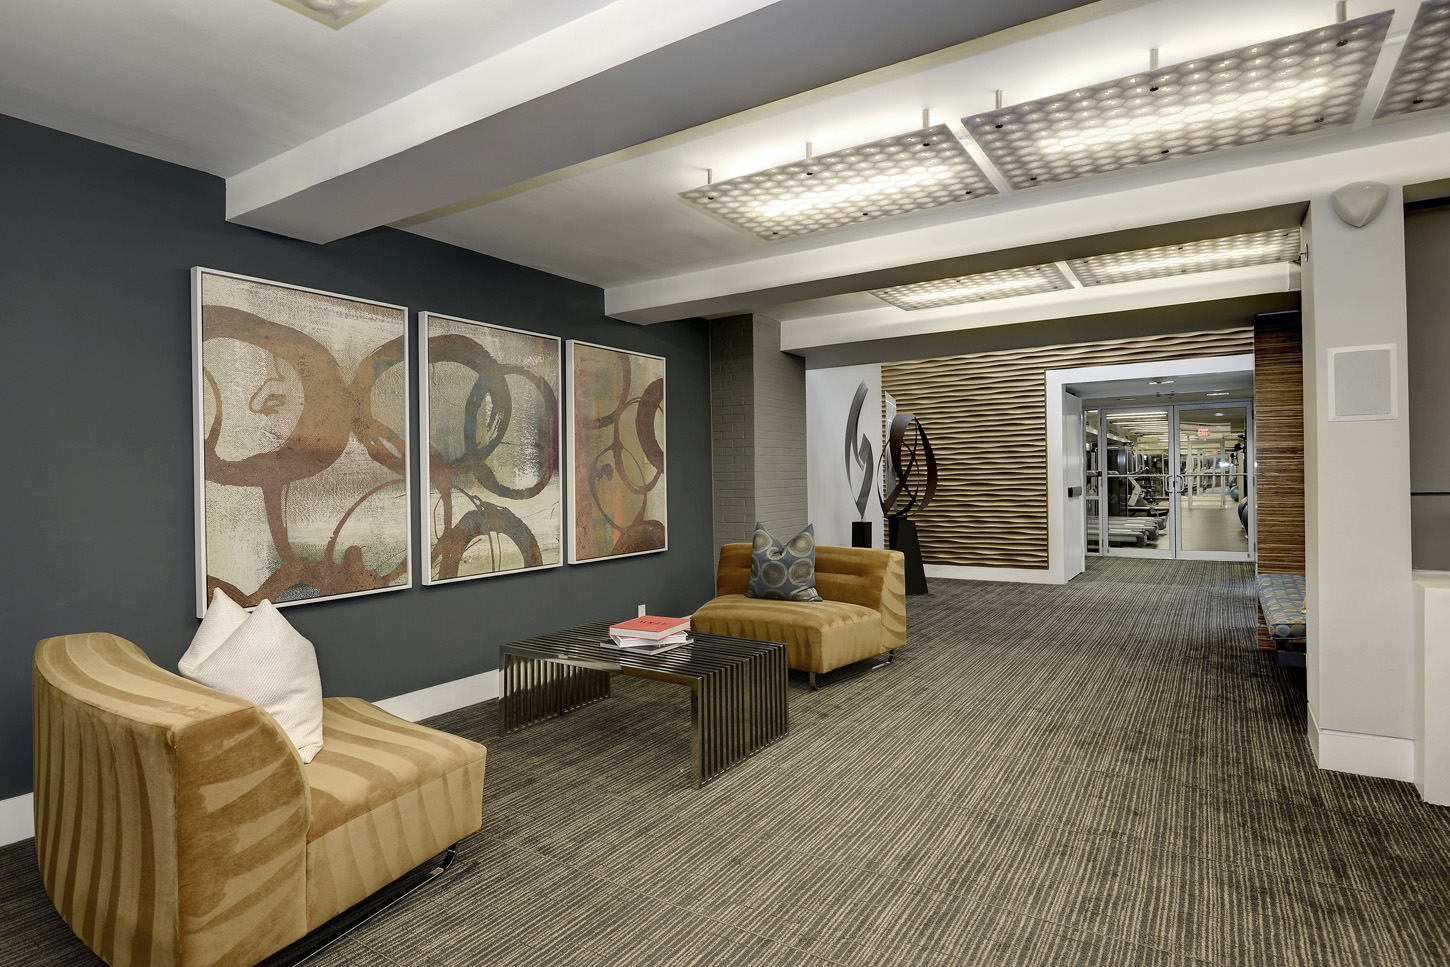 Clubroom hallway with armchairs and abstract art